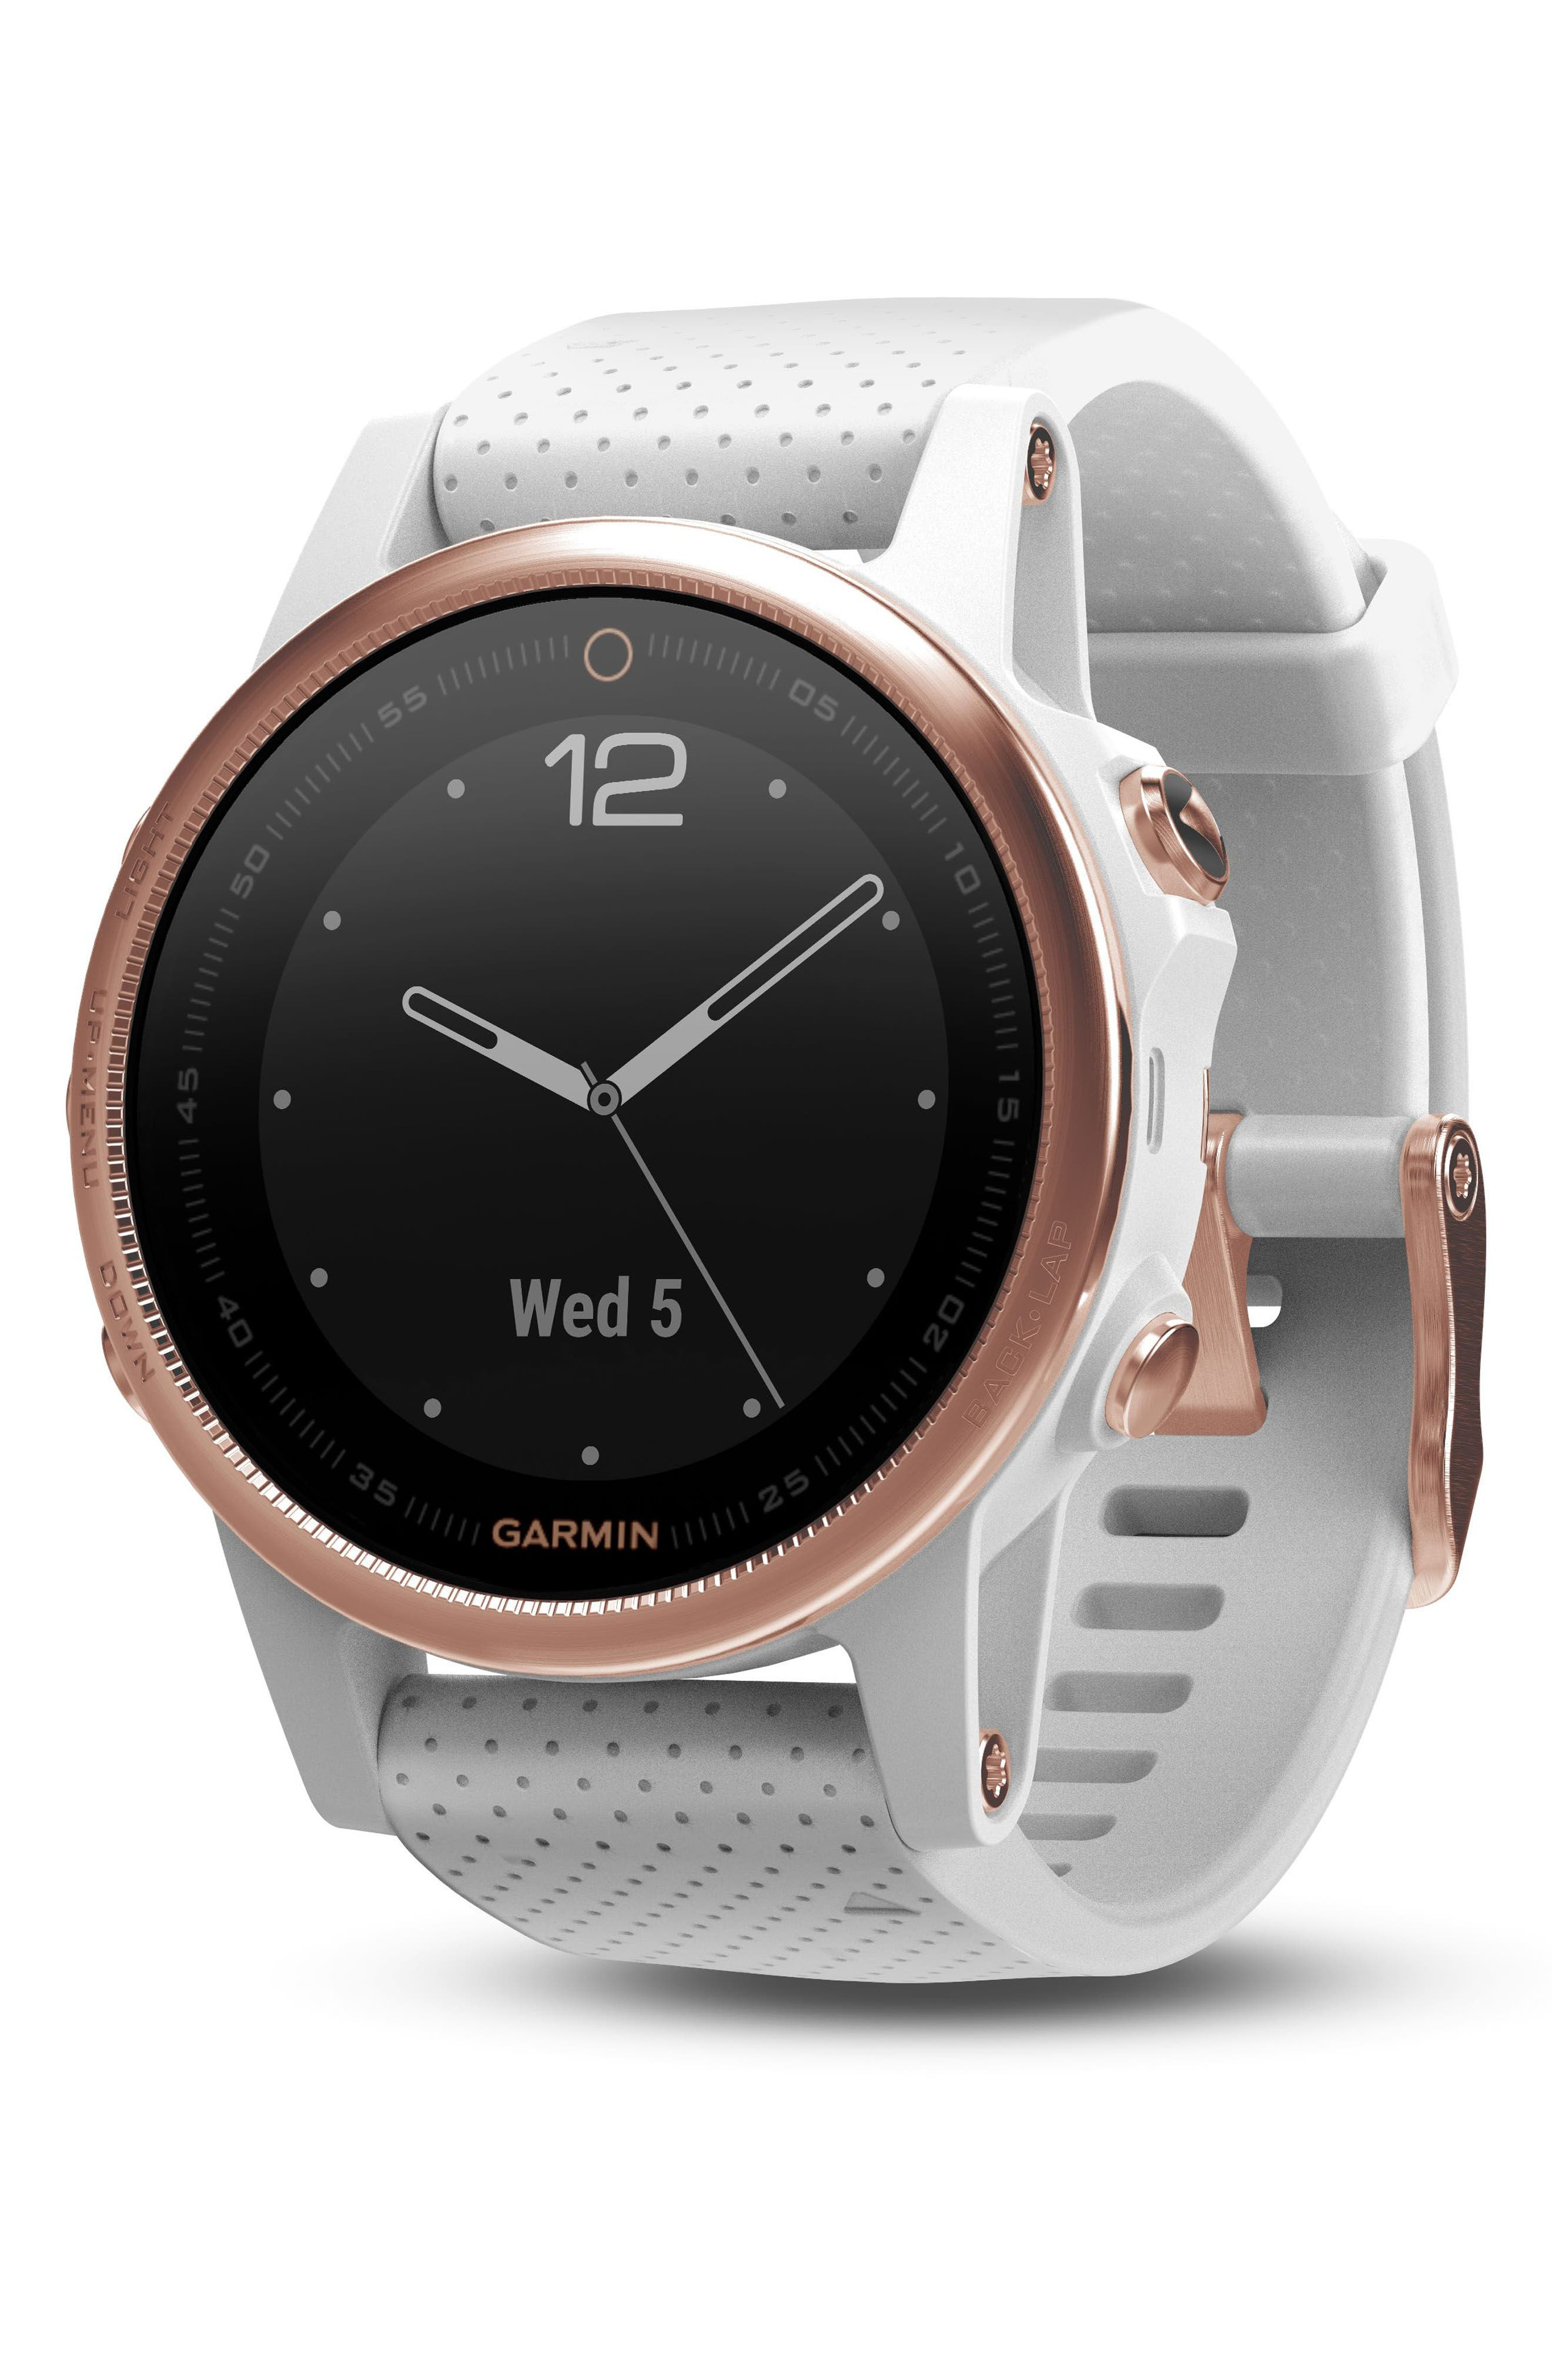 fenix<sup>®</sup> 5s Sapphire Multisport GPS Smart Tracker Silicone Strap Watch, 42mm,                         Main,                         color, White/ Rose Gold Sapphire